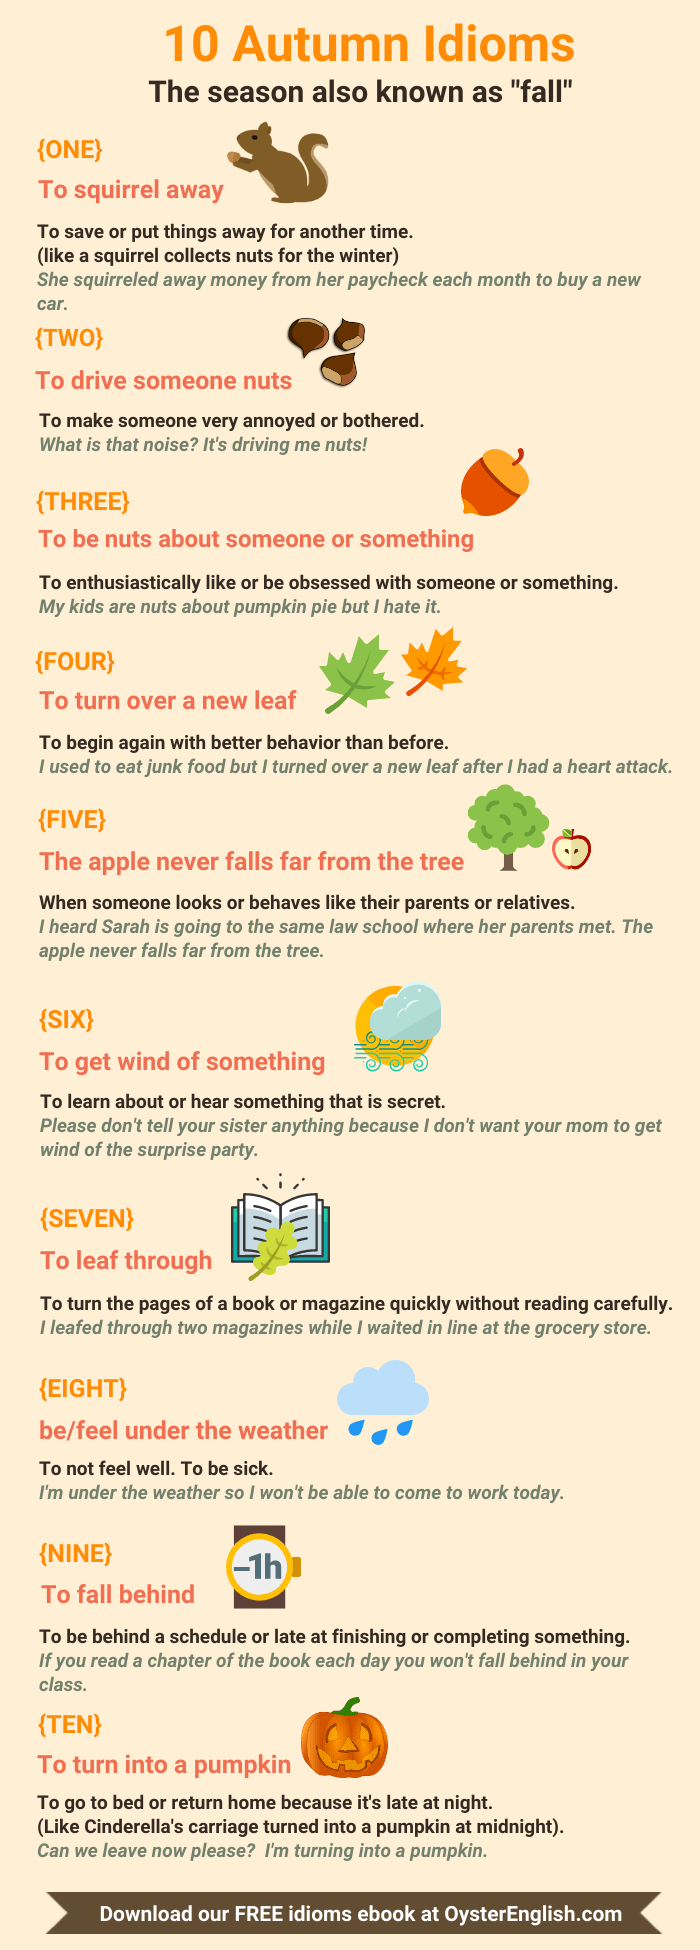 Autumn idioms infographic: squirrel away,be nuts about,drive someone nuts,turn over new leaf,apple never falls far from tree,get wind of, leaf through,under the weather, fall behind, turn into pumpkin